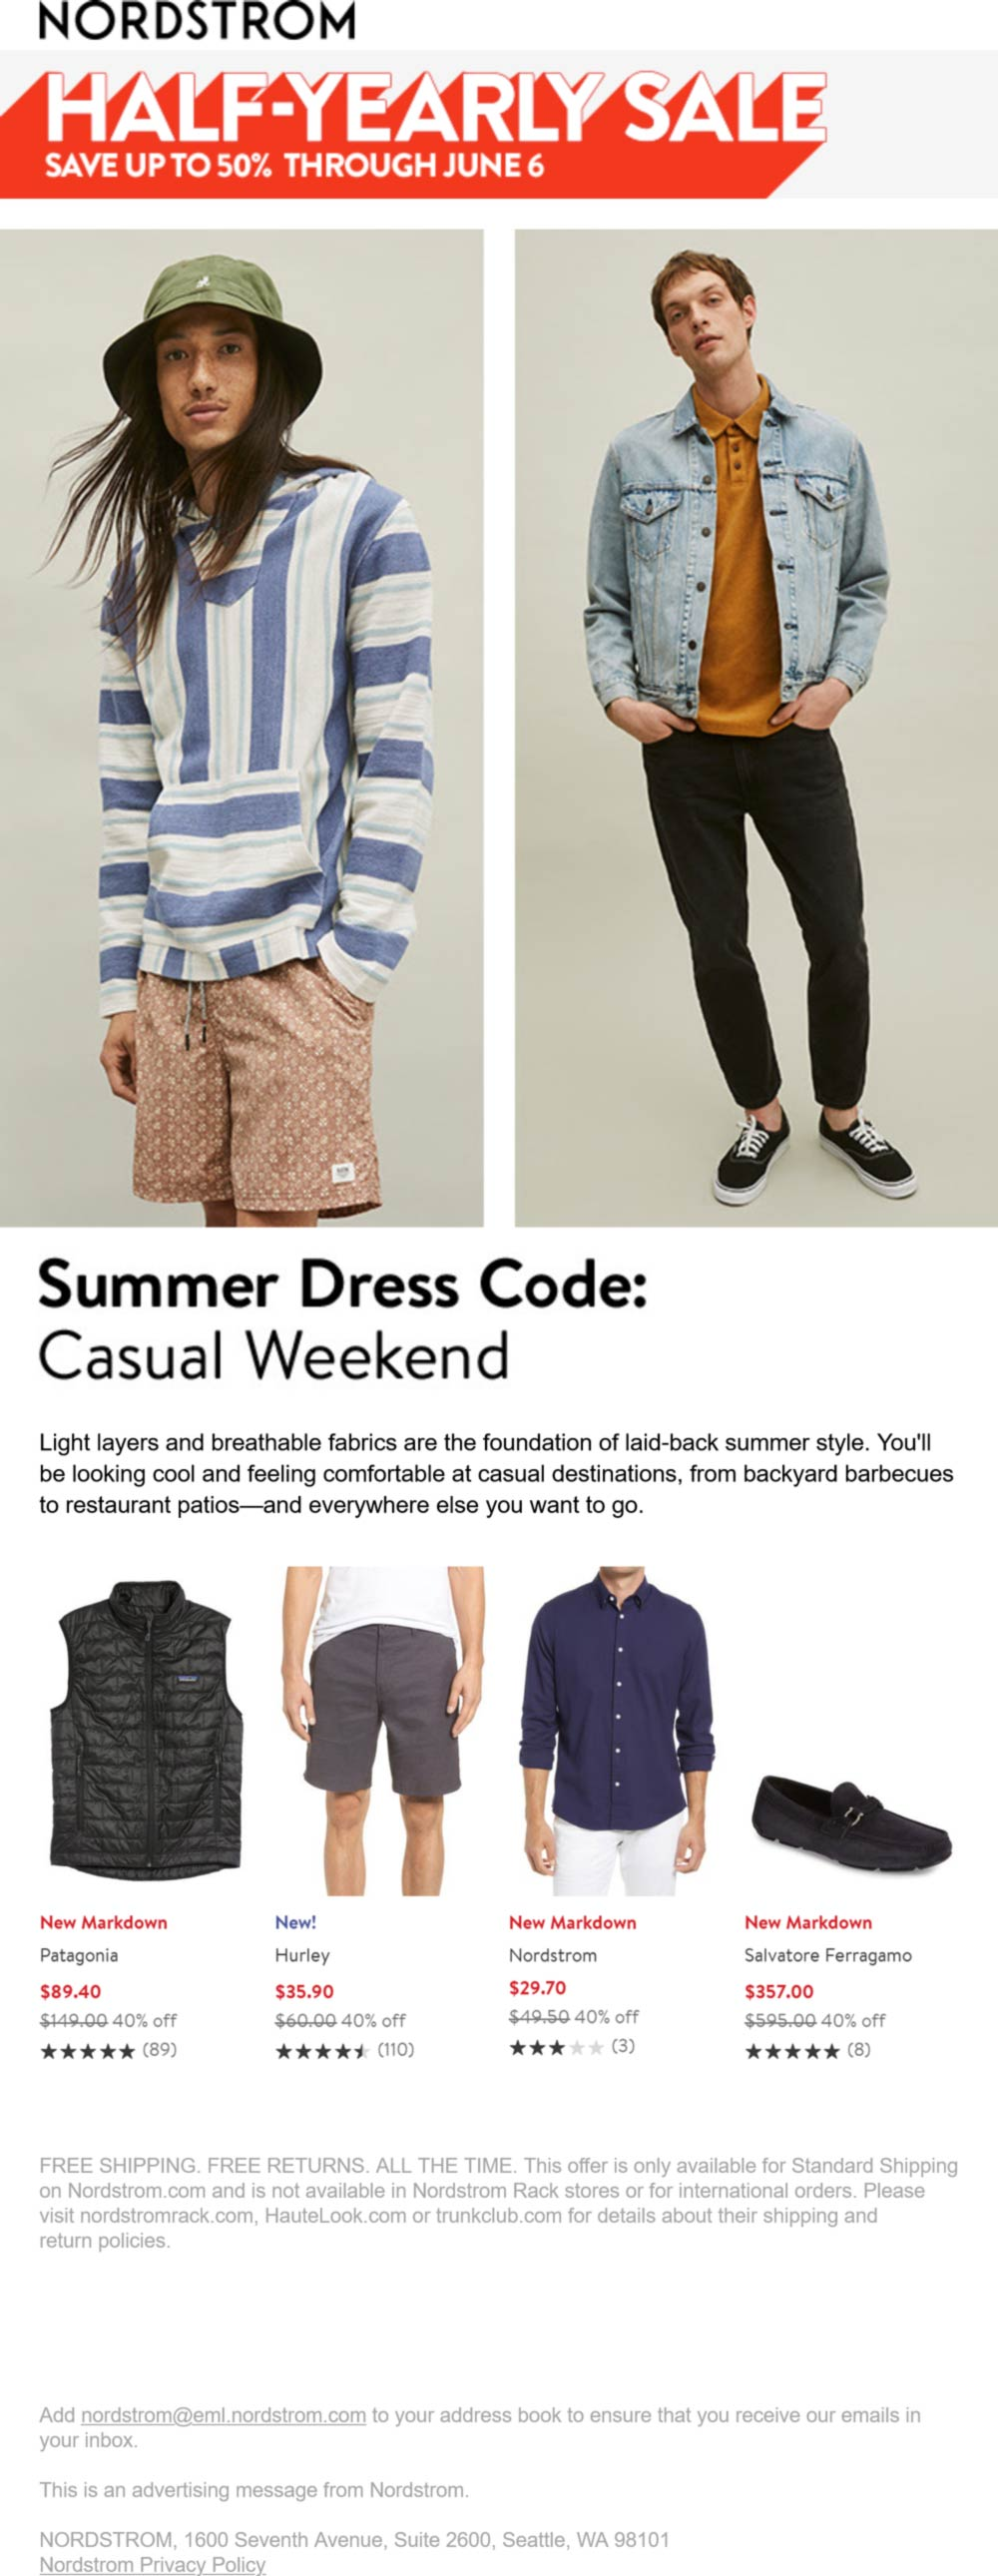 Nordstrom stores Coupon  Bi-annual 50% off sale going on at Nordstrom, also online #nordstrom